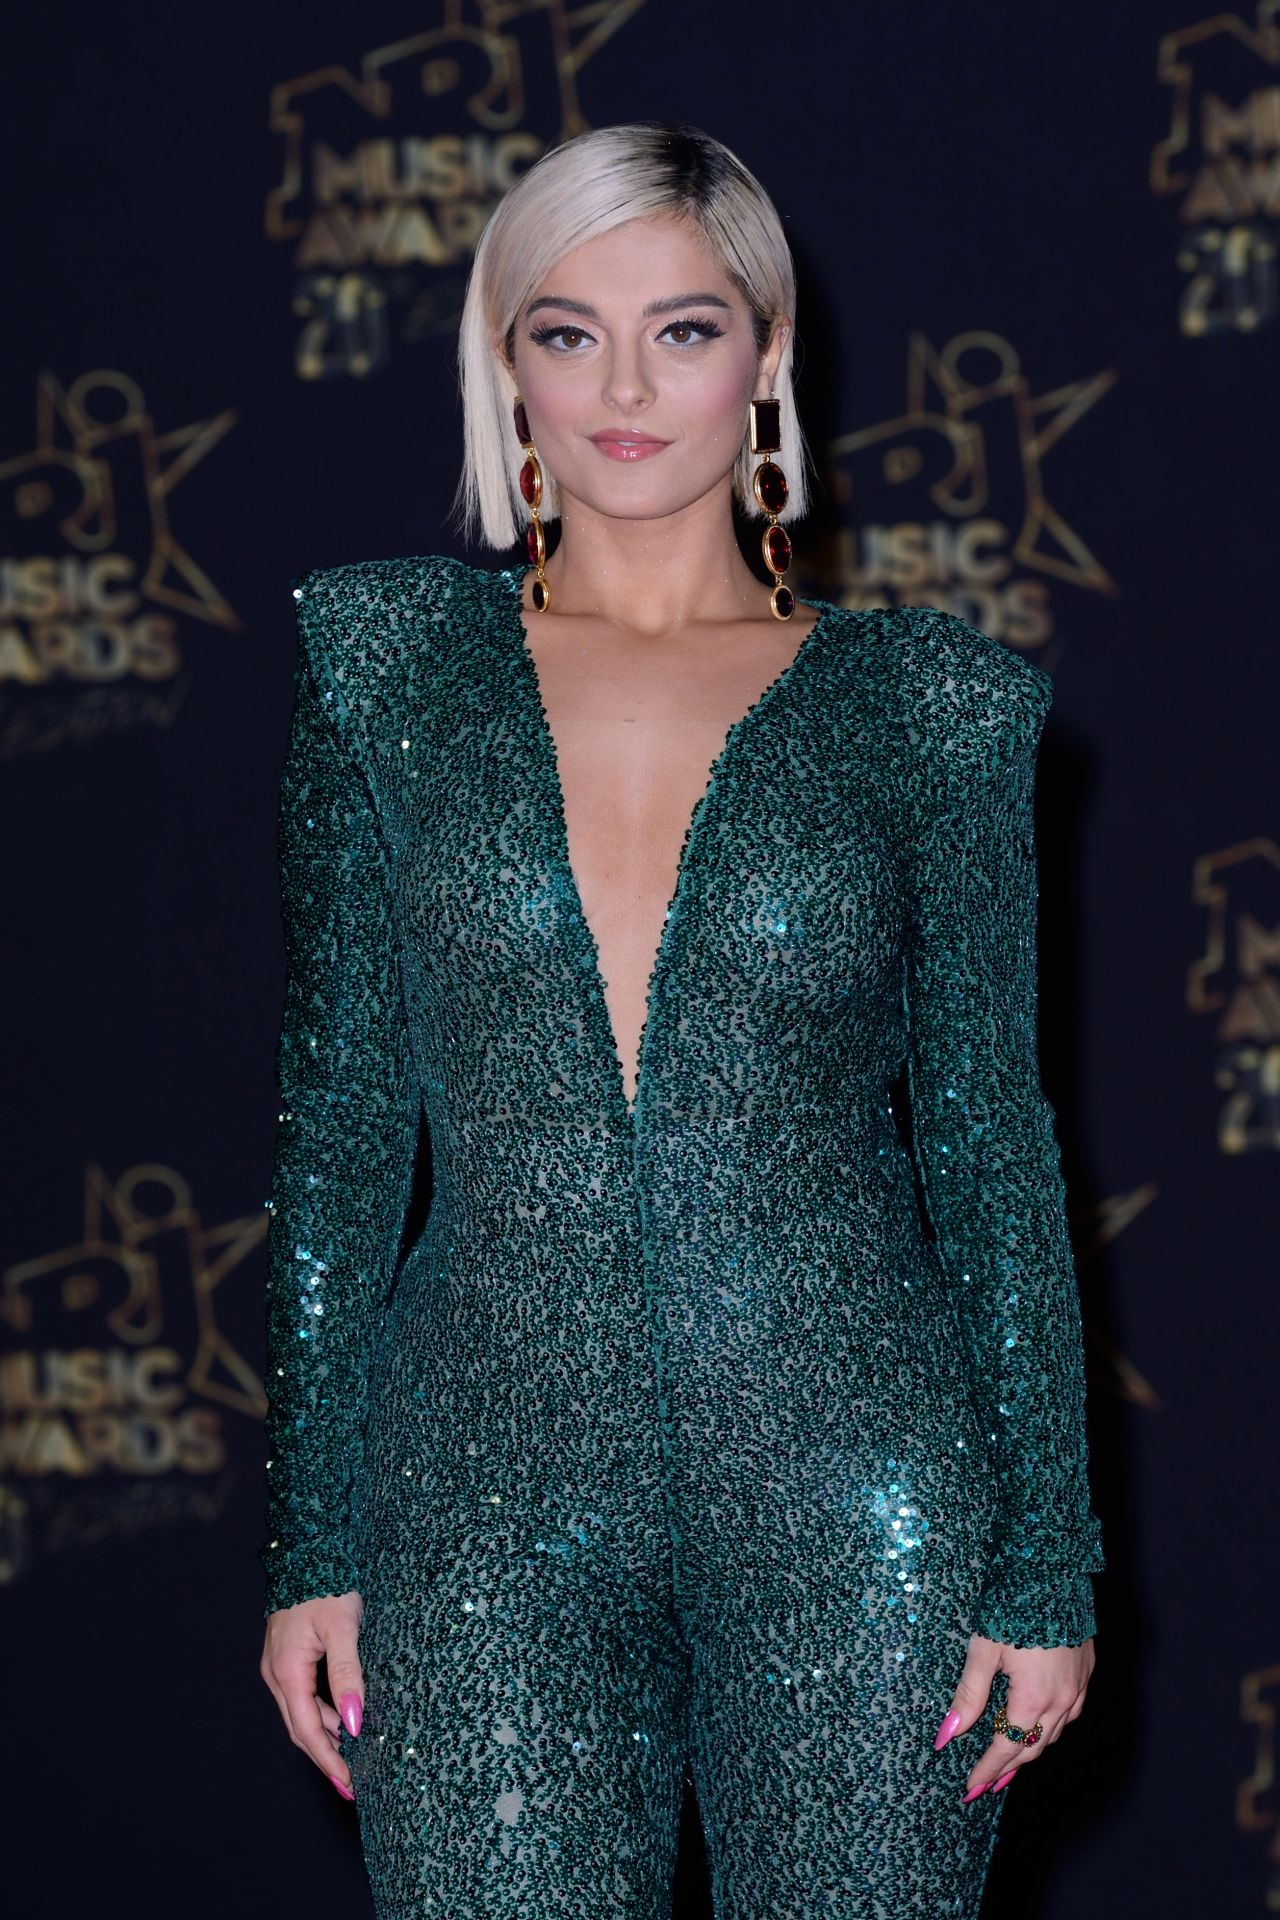 Bebe Rexha – 2018 NRJ Music Awards in Cannes